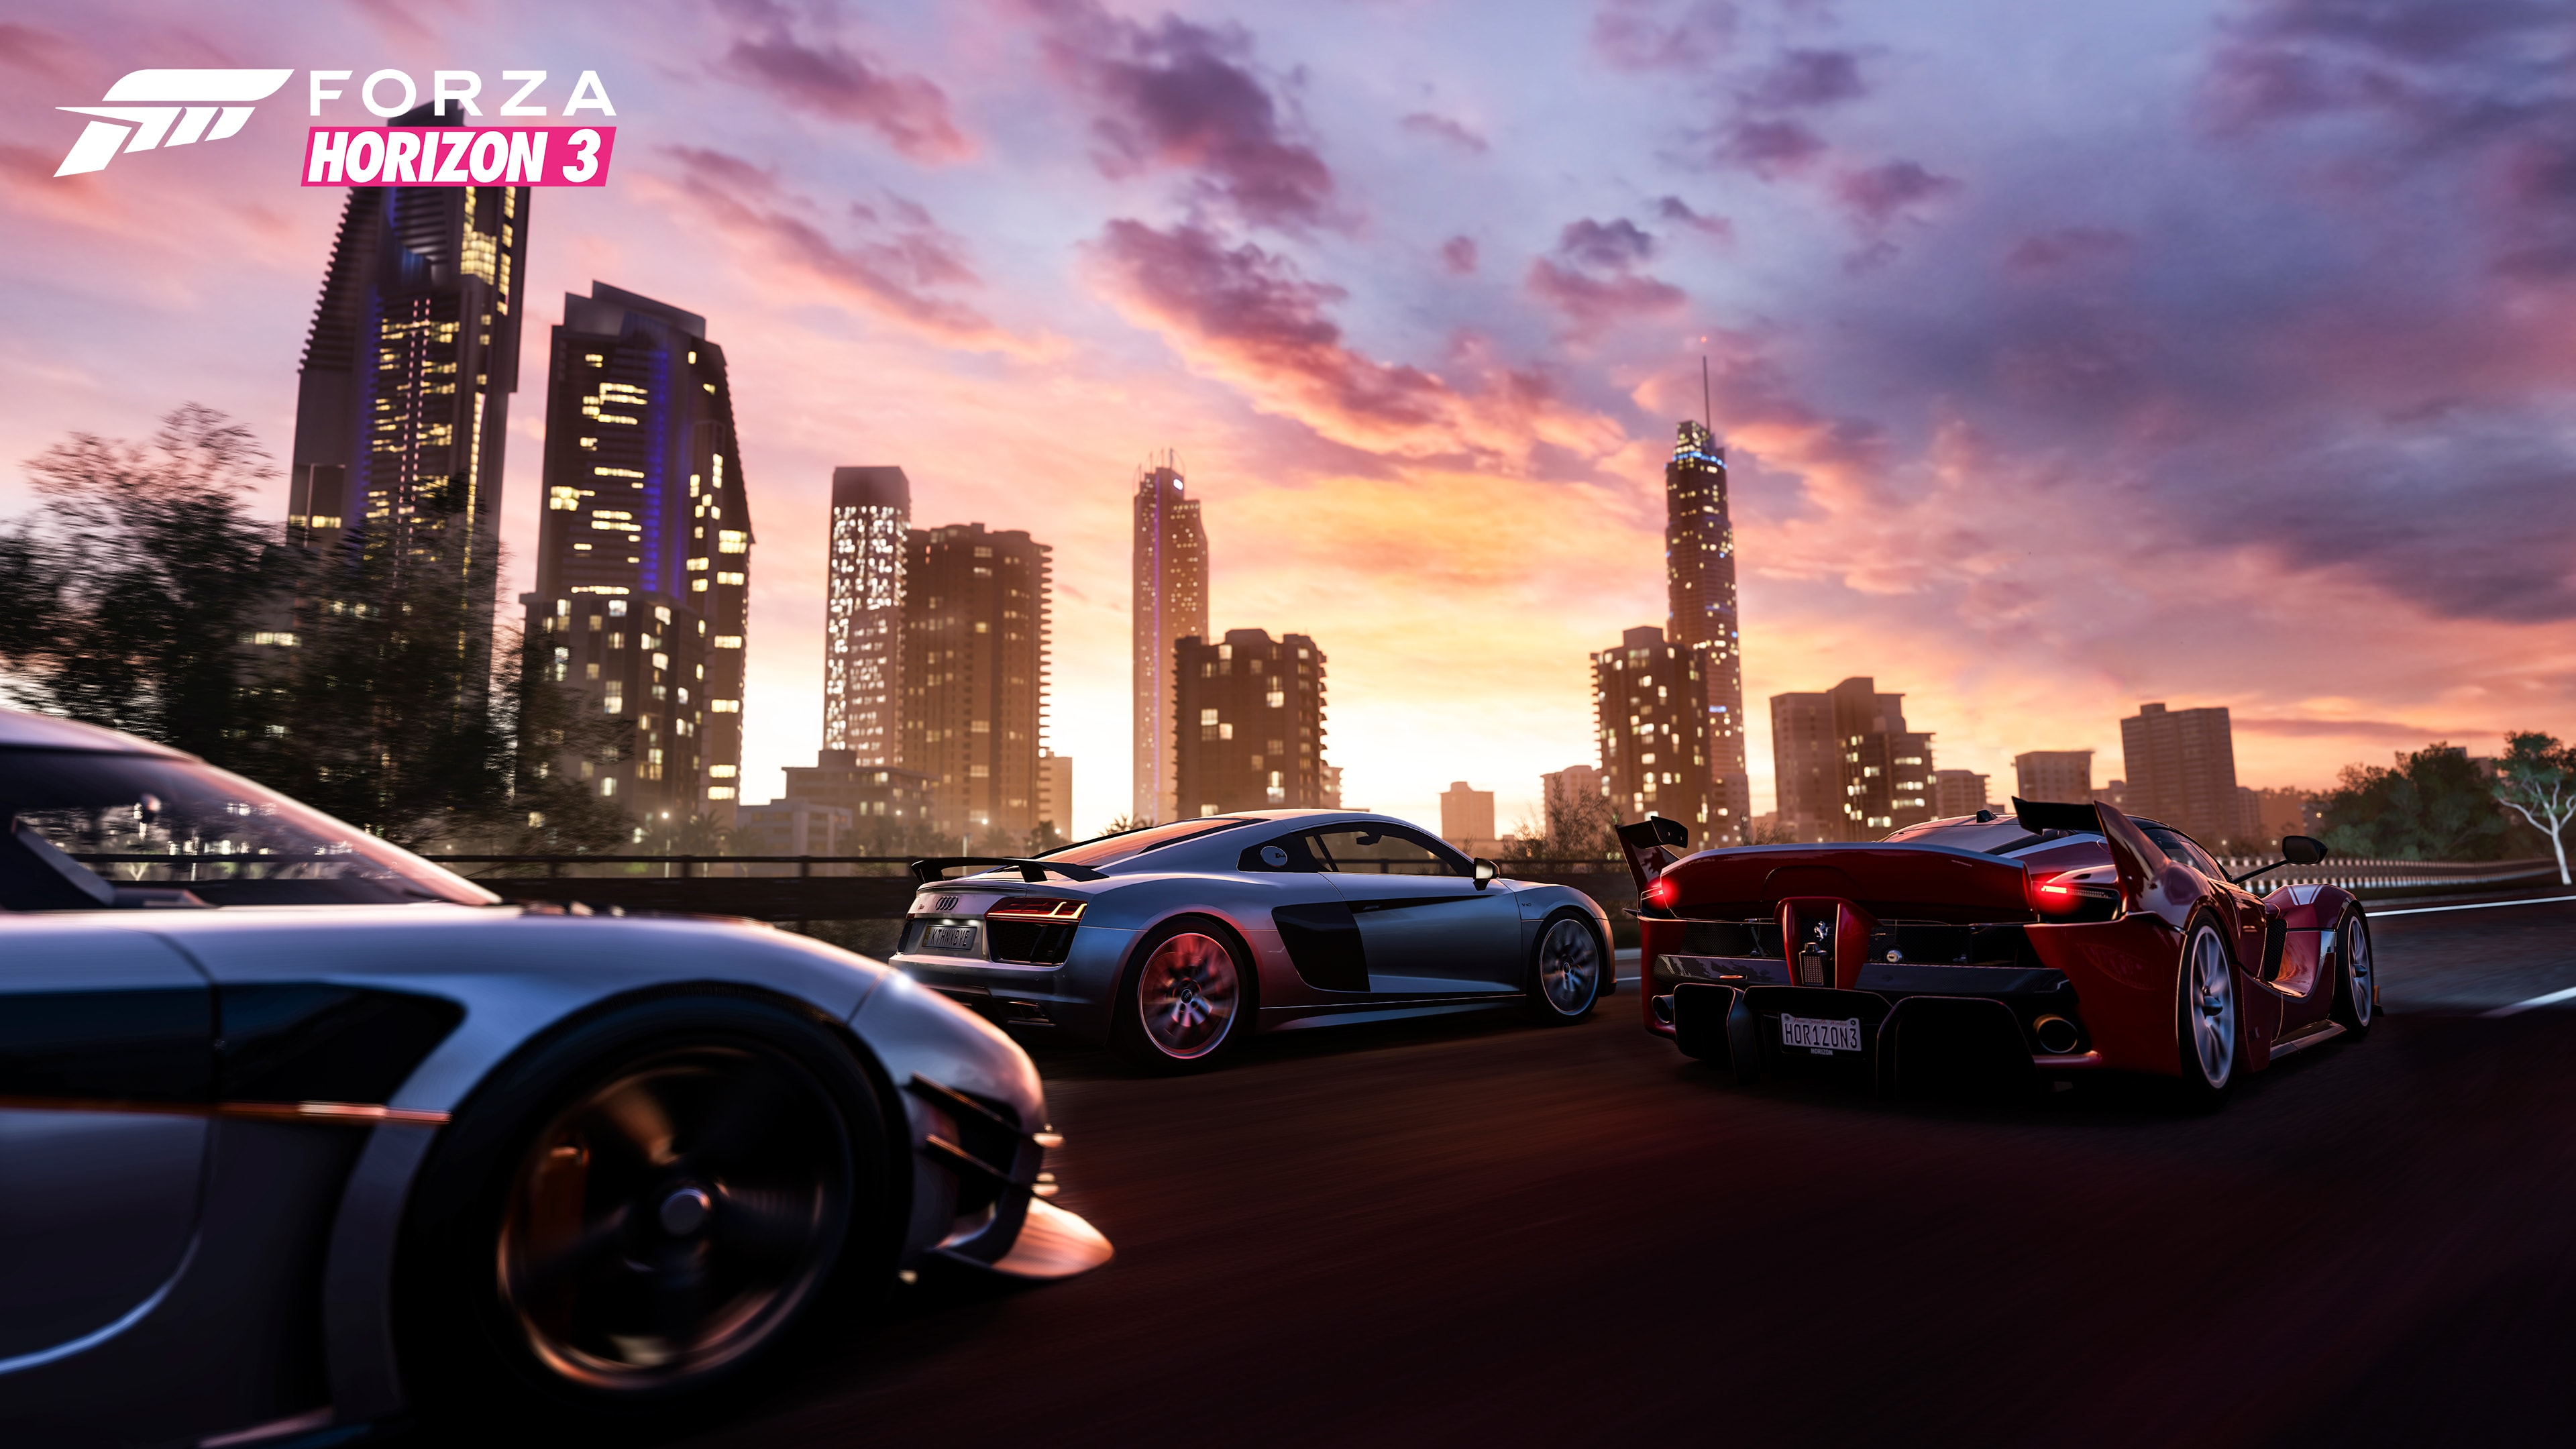 Forza Horizon 3 Desktop wallpapers